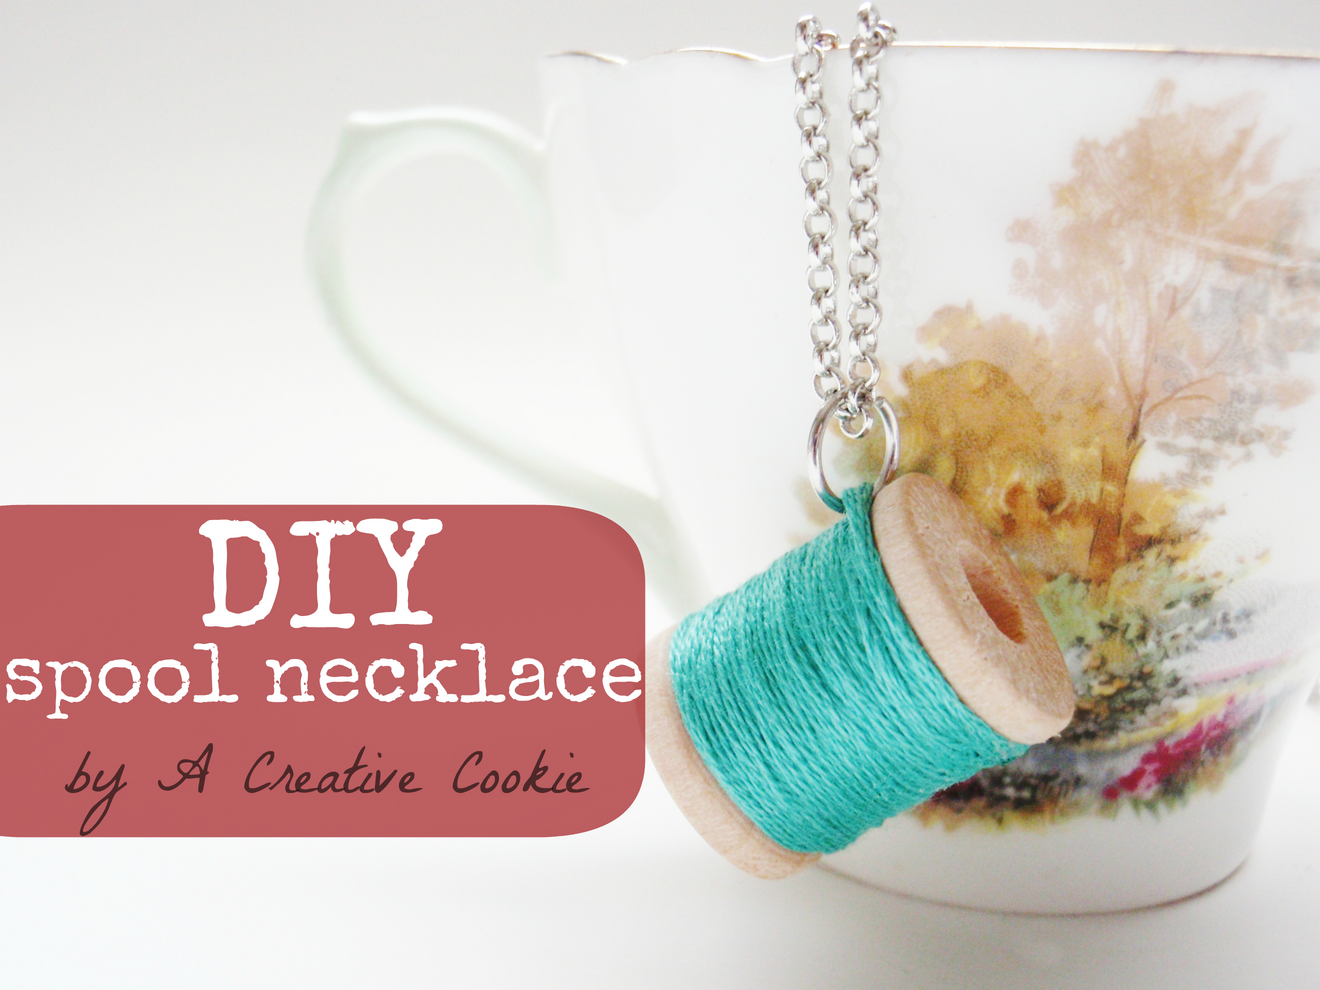 DIY Spool Necklace